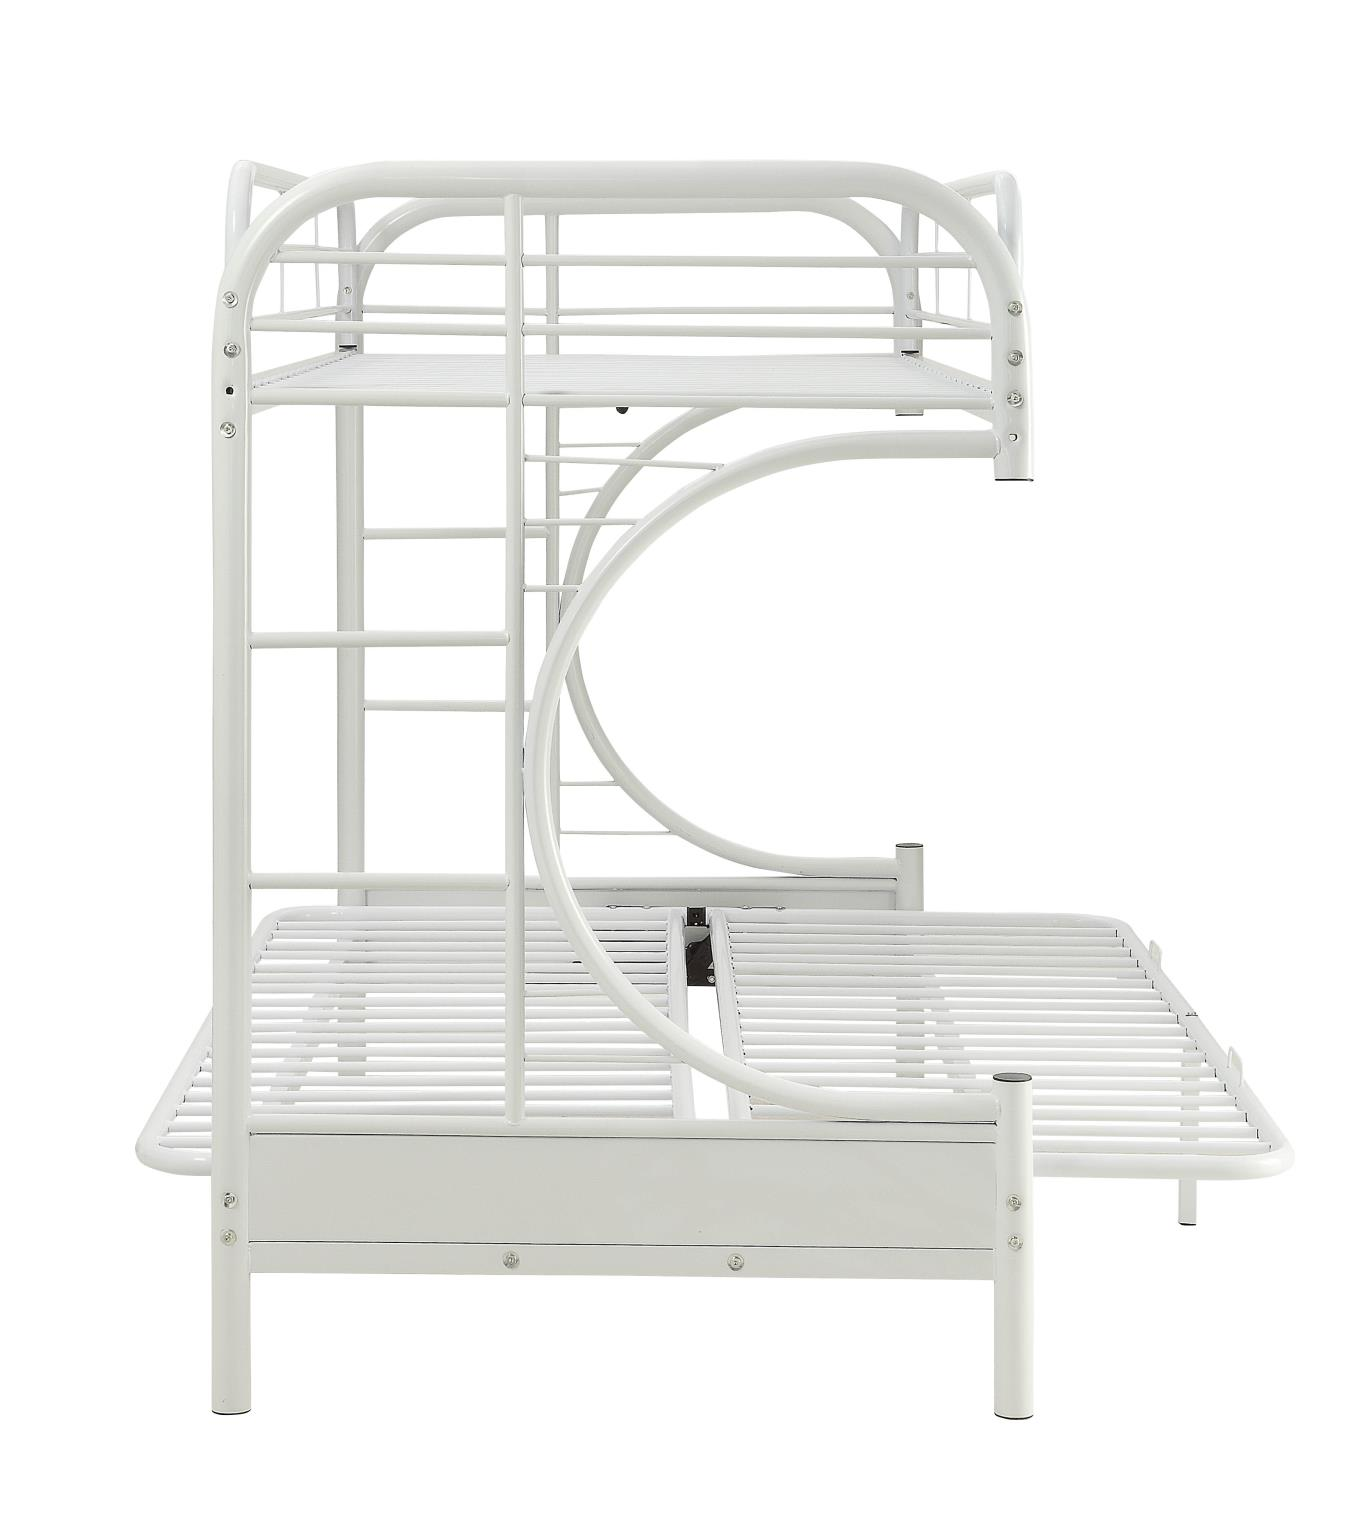 White Twin XL/Queen Futon Bunk Bed Side w/ Futon as Bed